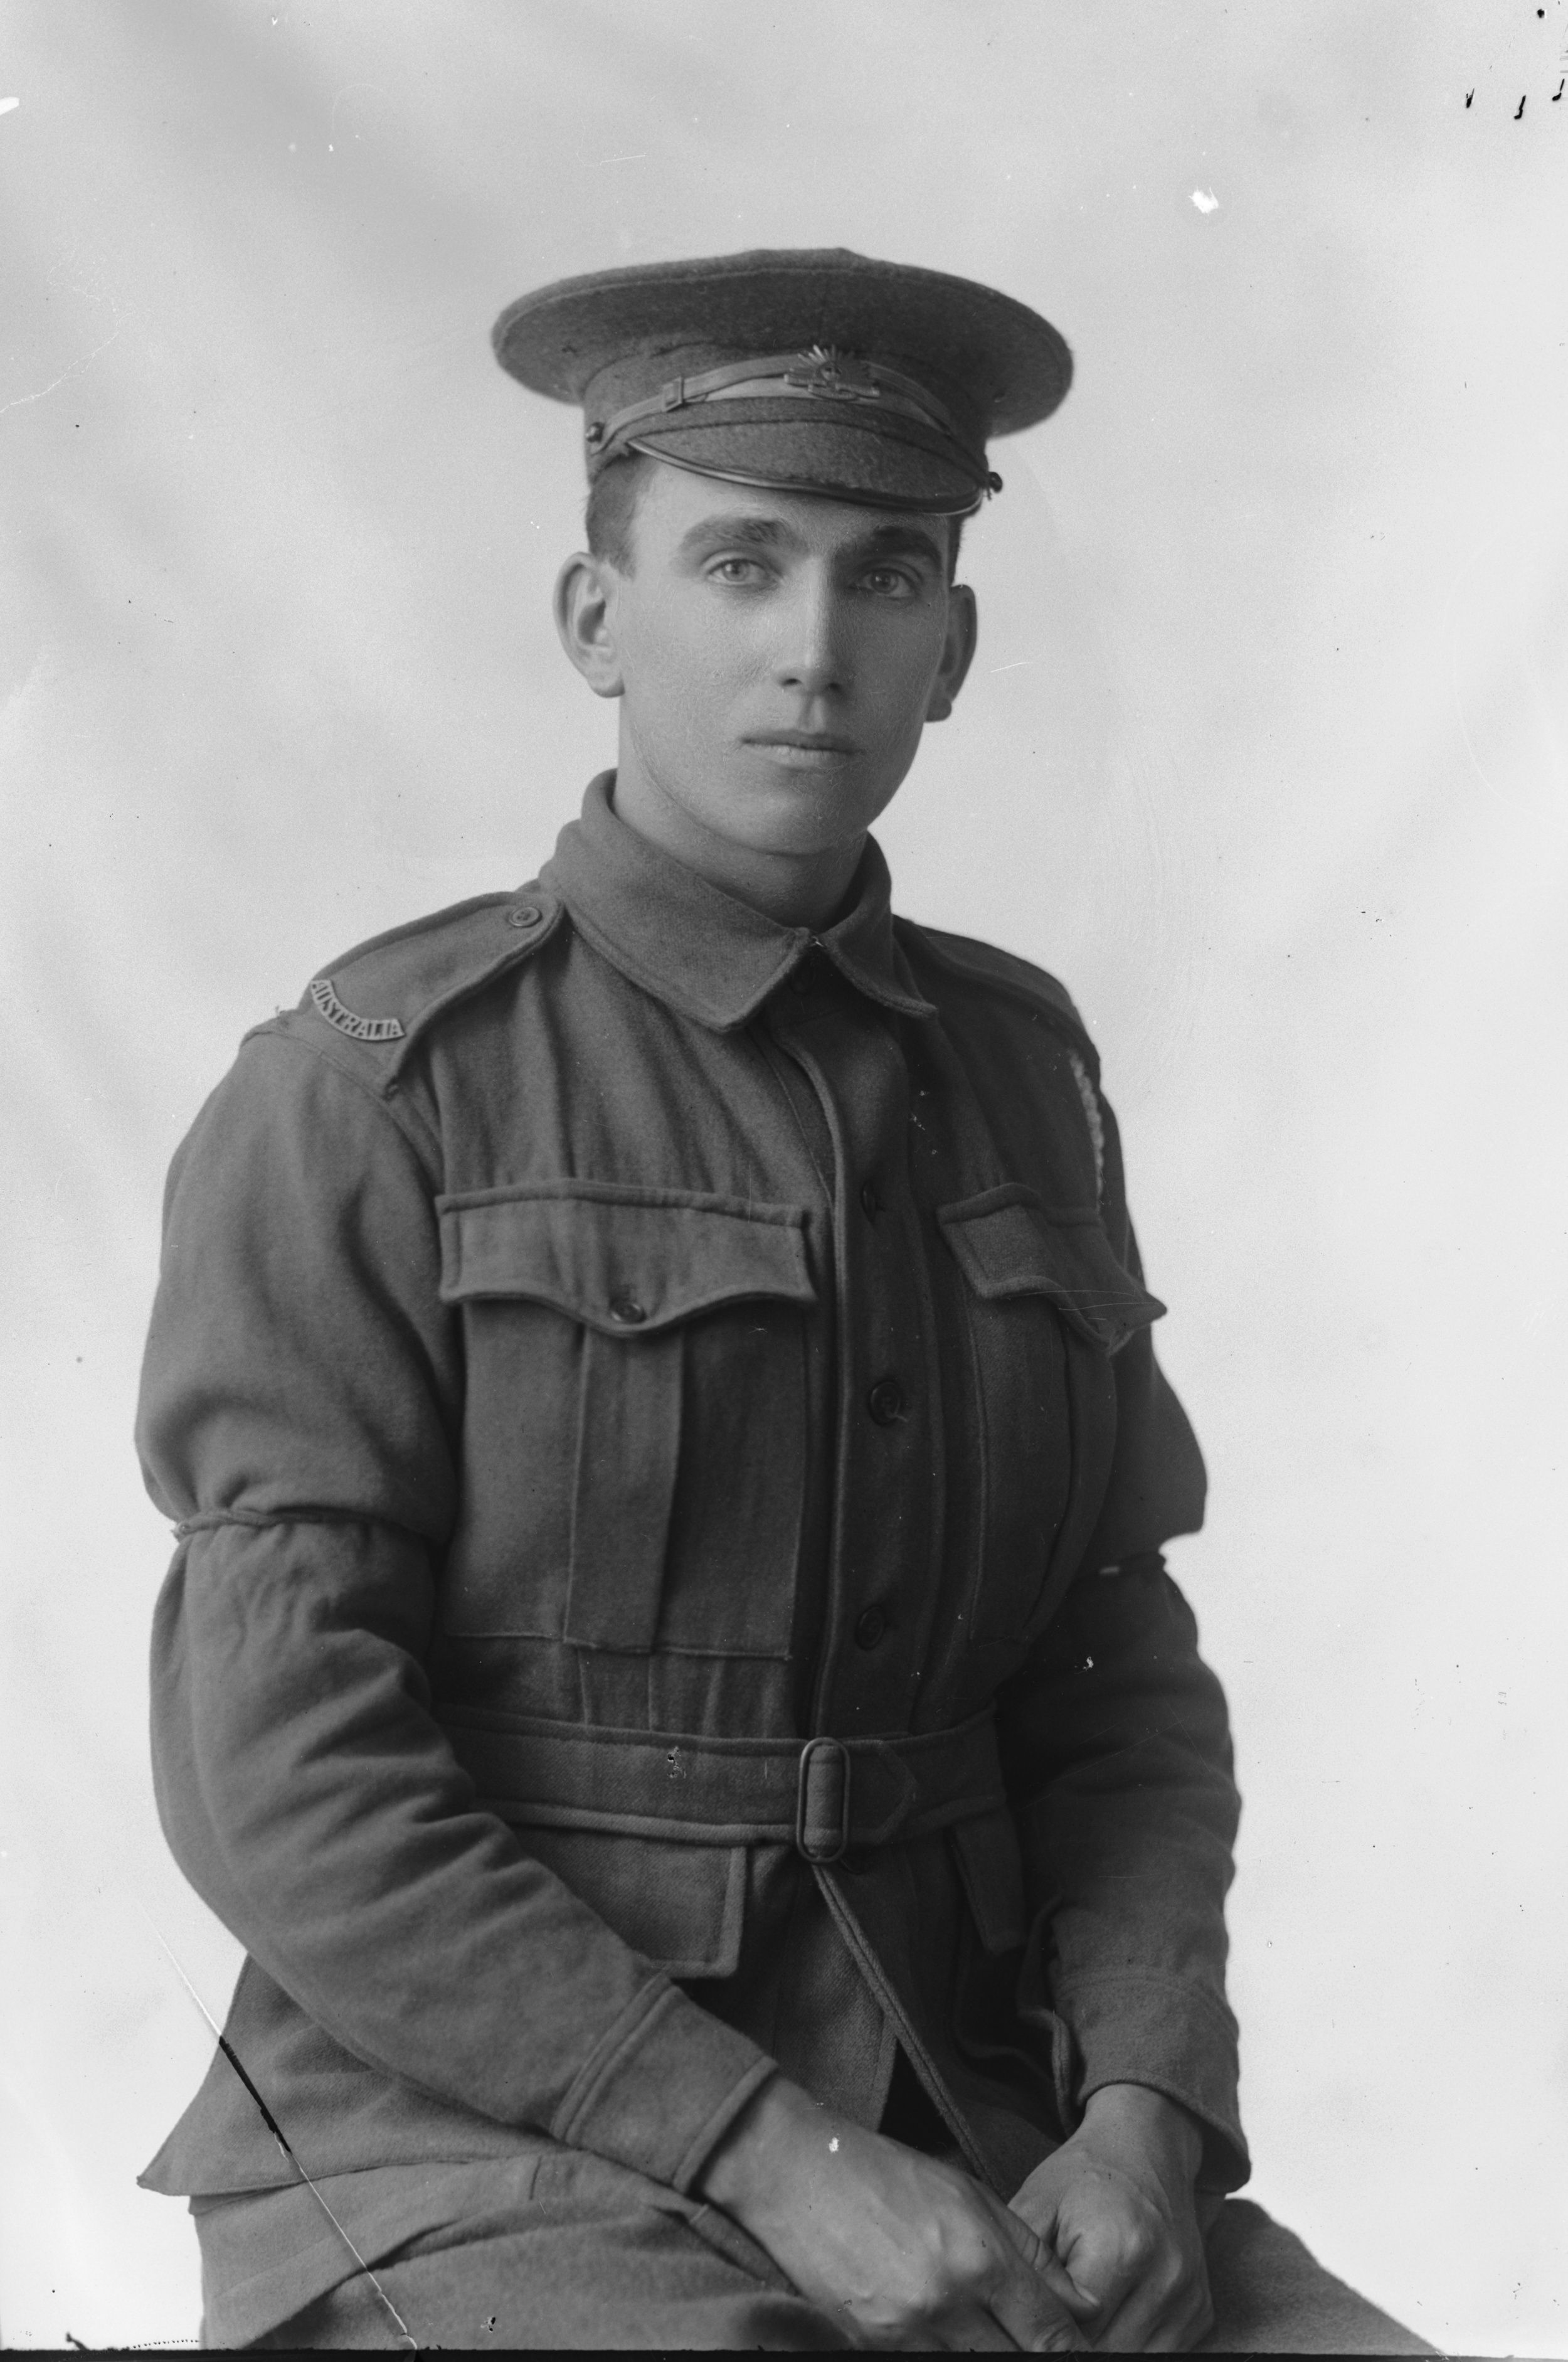 Photographed at the Dease Studio, 117 Barrack Street Perth WA Image courtesy of the State Library of Western Australia: 108197PD